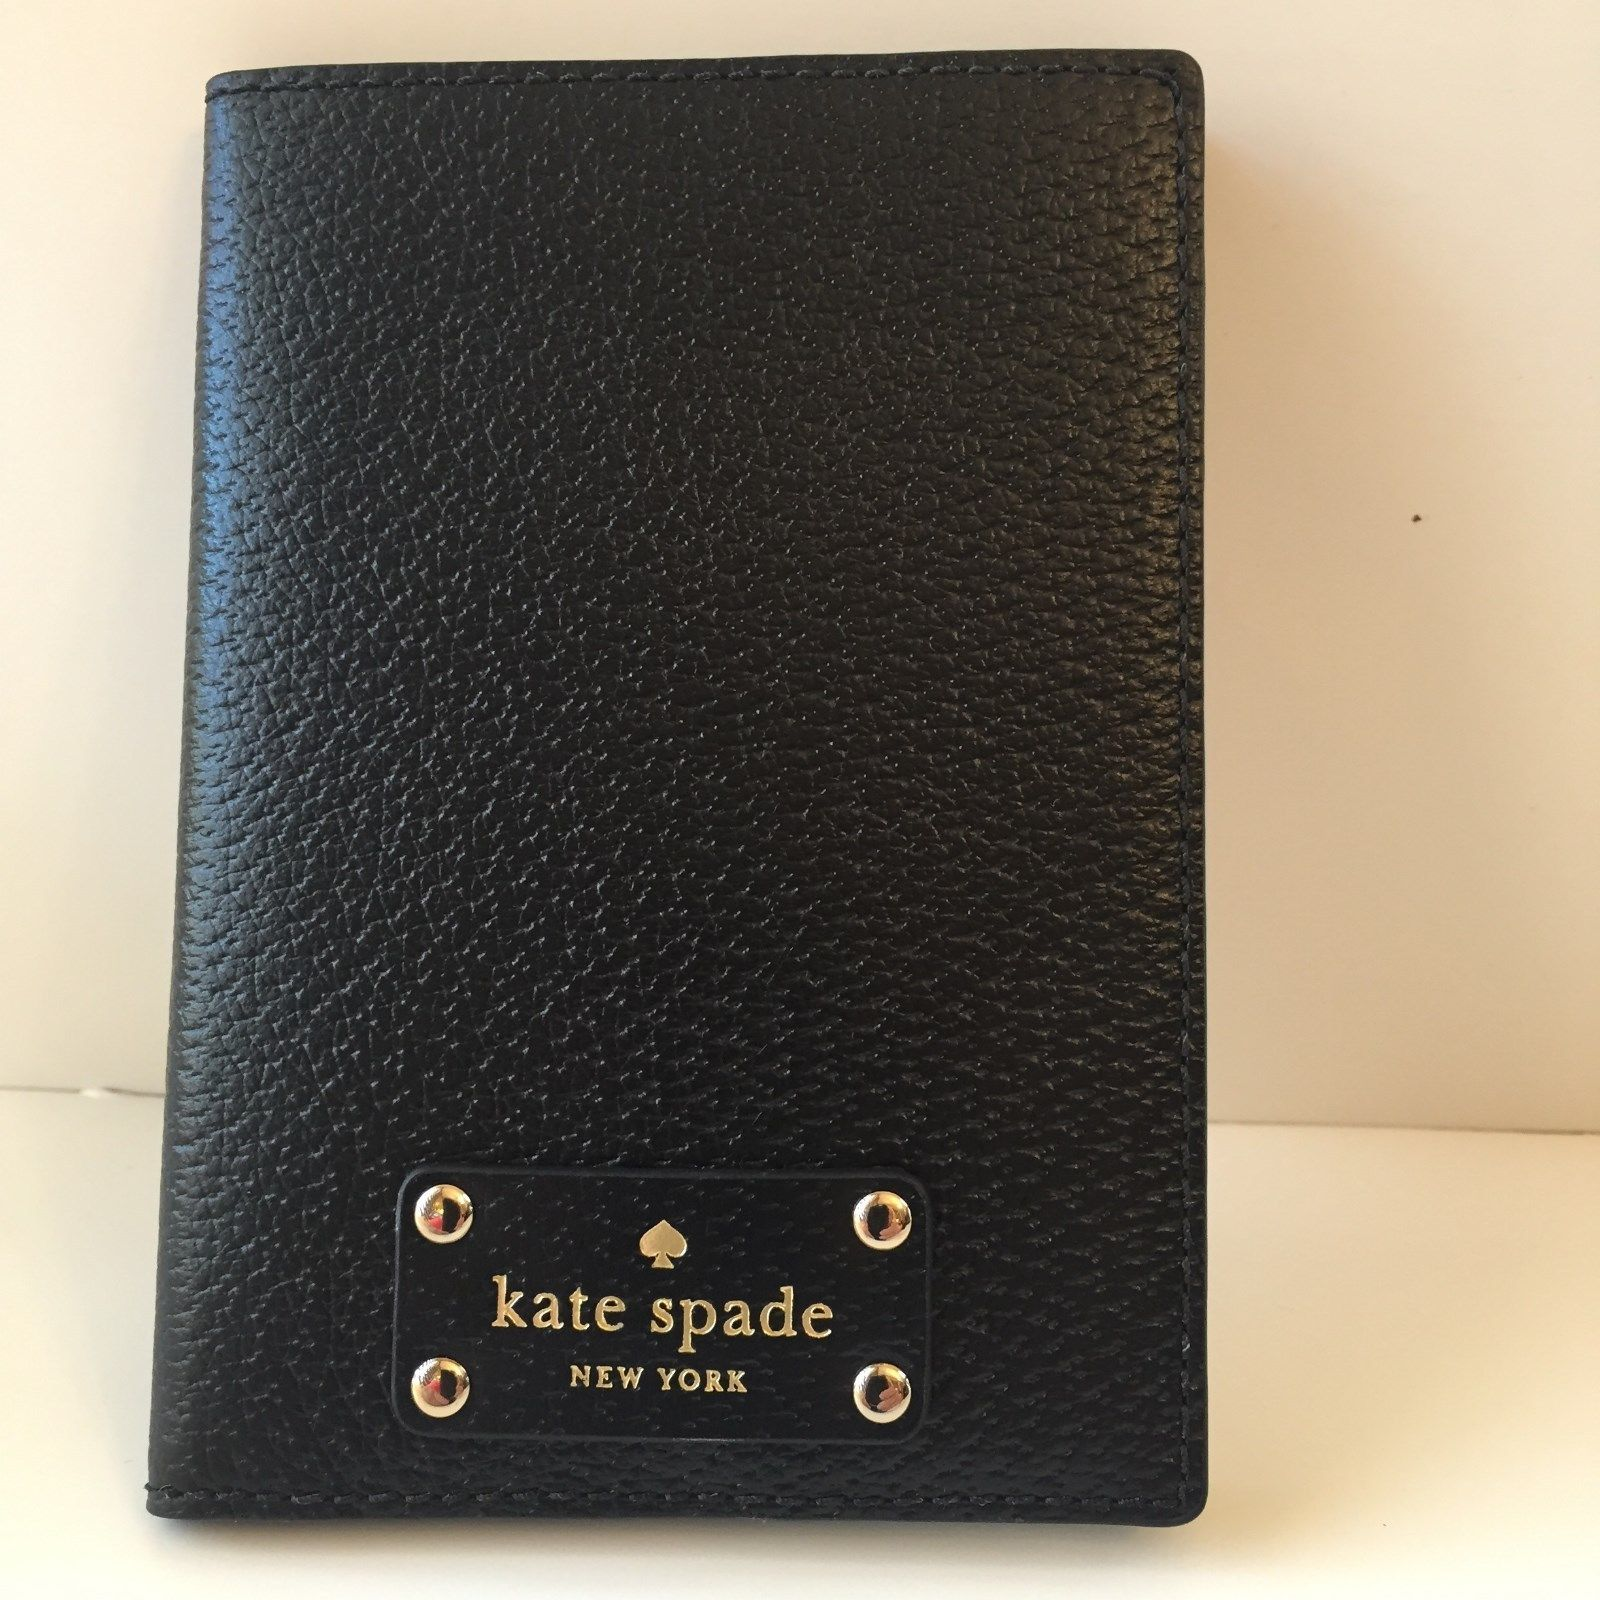 New! Authentic Kate Spade Black Wellesley Passport Holder Case Wallet WLRU1236